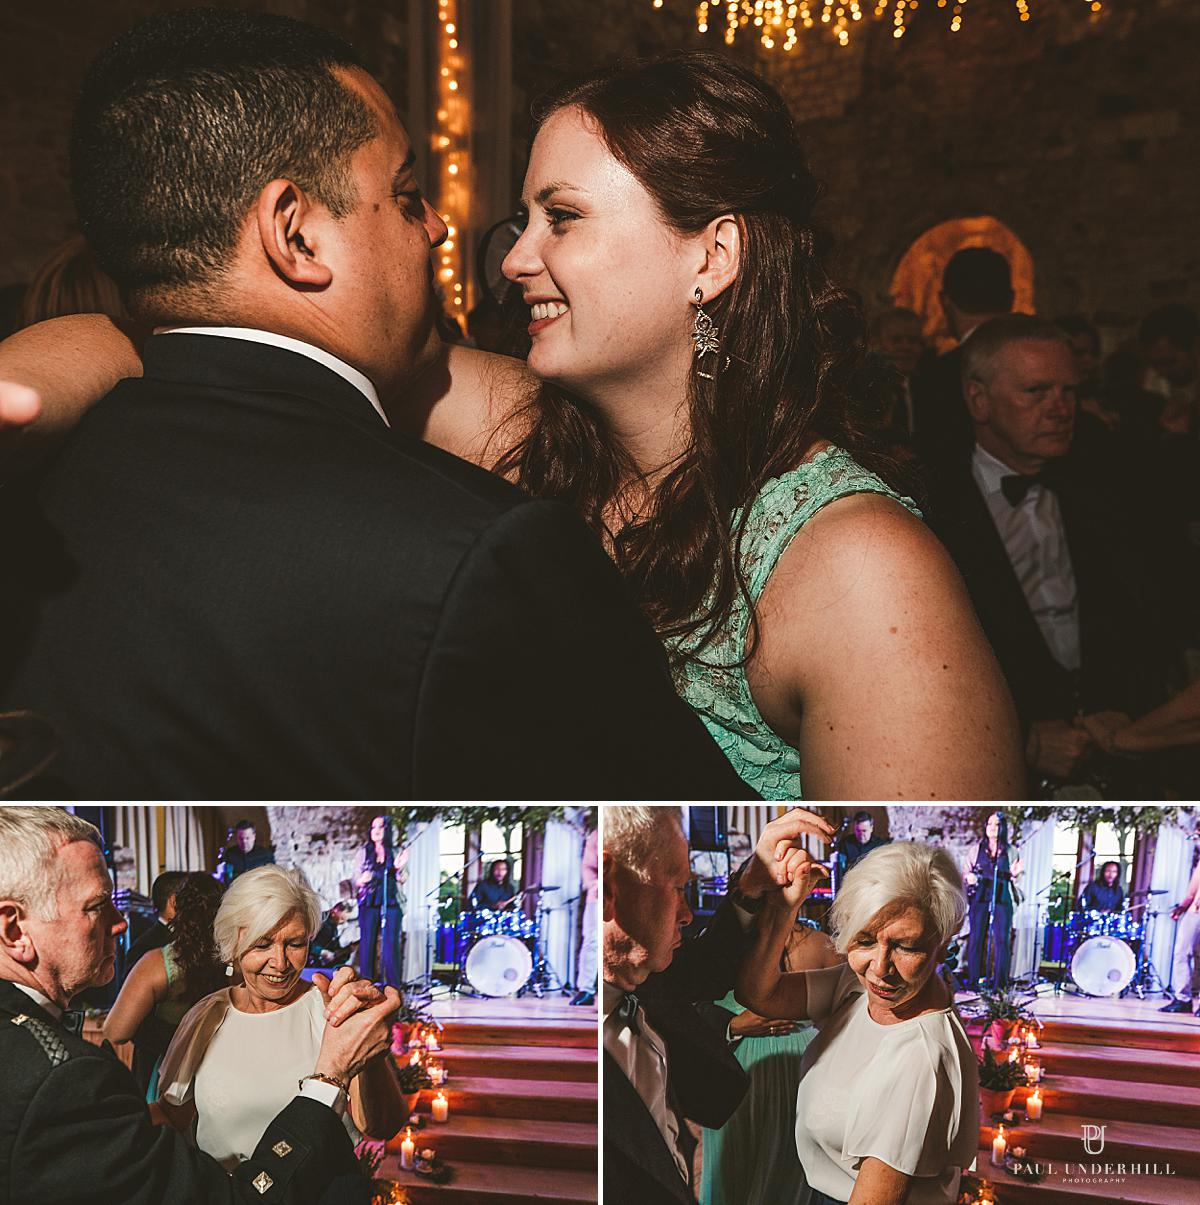 Lulworth Castle wedding photography